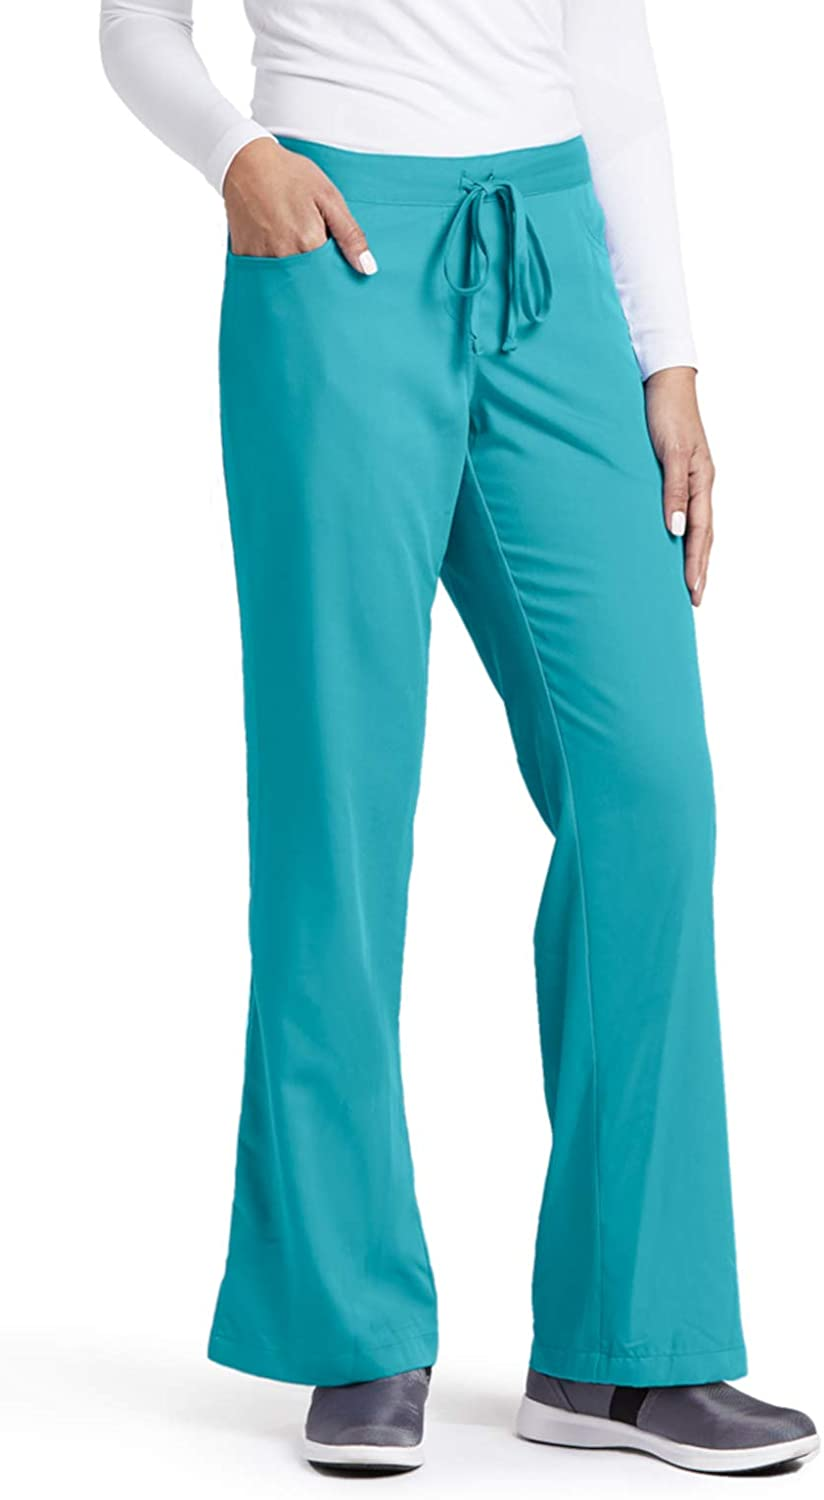 Grey's Anatomy Women's Junior-Fit Five-Pocket Drawstring Scrub Pant - Small Tall - Teal